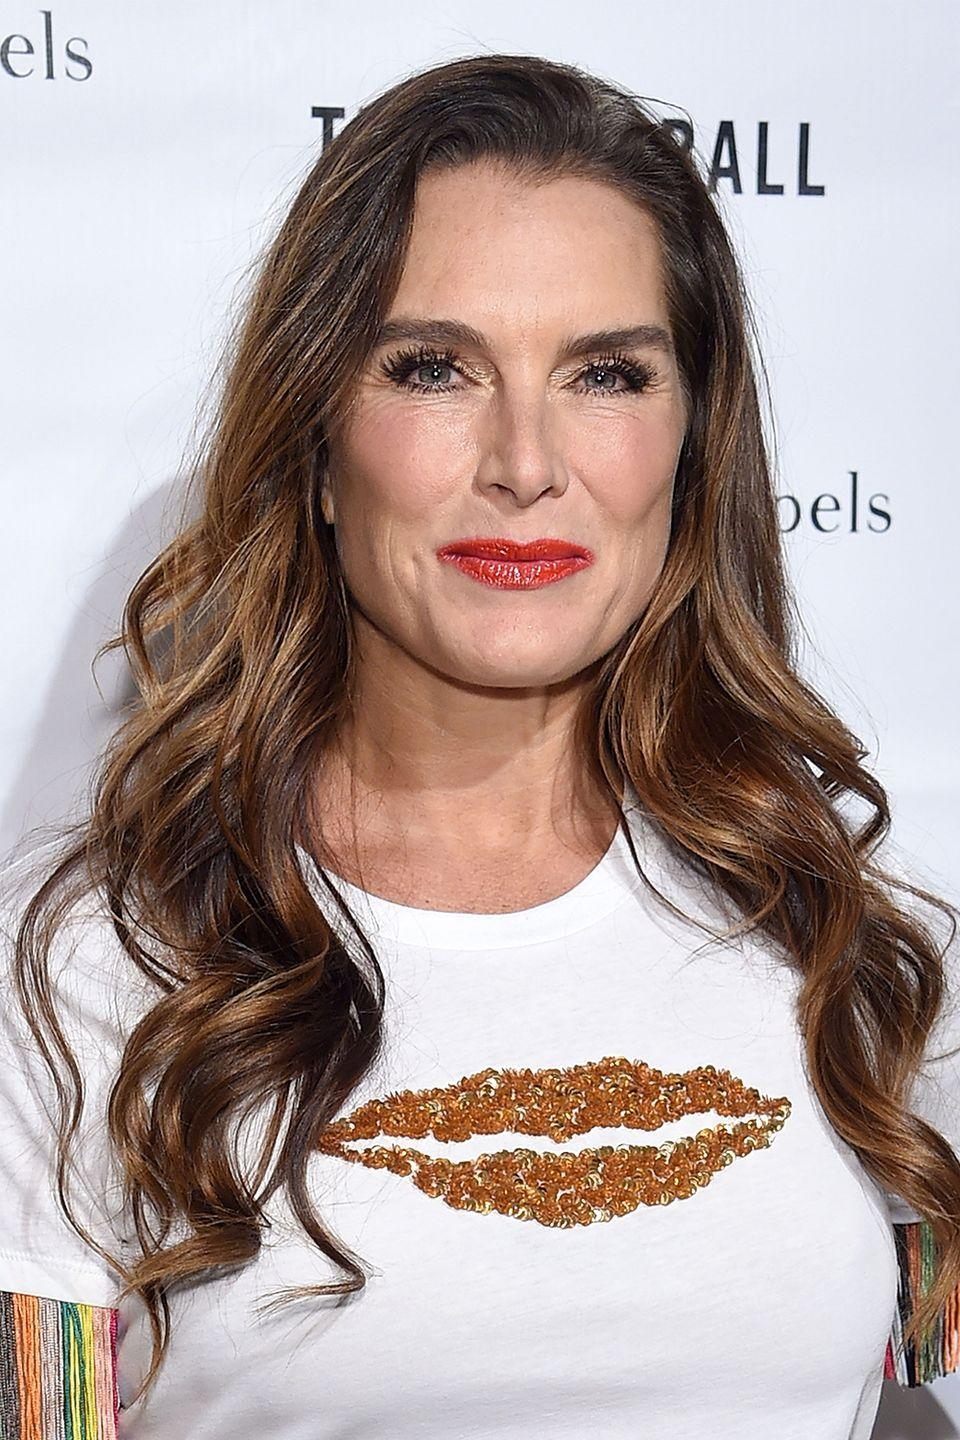 """<p>Unlike many celebrities whose faith was the reason behind remaining celibate until marriage, Brooke Shields attributes being insecure about her body as the reason she didn't have sex until 22 years old. </p><p>""""I had the public and all this pressure, and I wish I had just gotten it over with in the beginning when it was sort of okay,"""" <a href=""""http://www.dailymail.co.uk/tvshowbiz/article-1187371/Brooke-Shields-I-virgin-age-22-I-didnt-like-way-I-looked.html"""" rel=""""nofollow noopener"""" target=""""_blank"""" data-ylk=""""slk:she said"""" class=""""link rapid-noclick-resp"""">she said</a>. """"I think I would have been much more in touch with myself."""" She had sex with her longtime boyfriend, Dean Cain for the first time several years into the relationship. She <a href=""""http://www.eonline.com/news/597556/brooke-shields-recalls-beautiful-experience-of-losing-her-virginity-to-dean-cain-before-guilt-slapped-her-in-the-face"""" rel=""""nofollow noopener"""" target=""""_blank"""" data-ylk=""""slk:thought she'd marry him"""" class=""""link rapid-noclick-resp"""">thought she'd marry him</a>, but they ended up breaking up.</p>"""